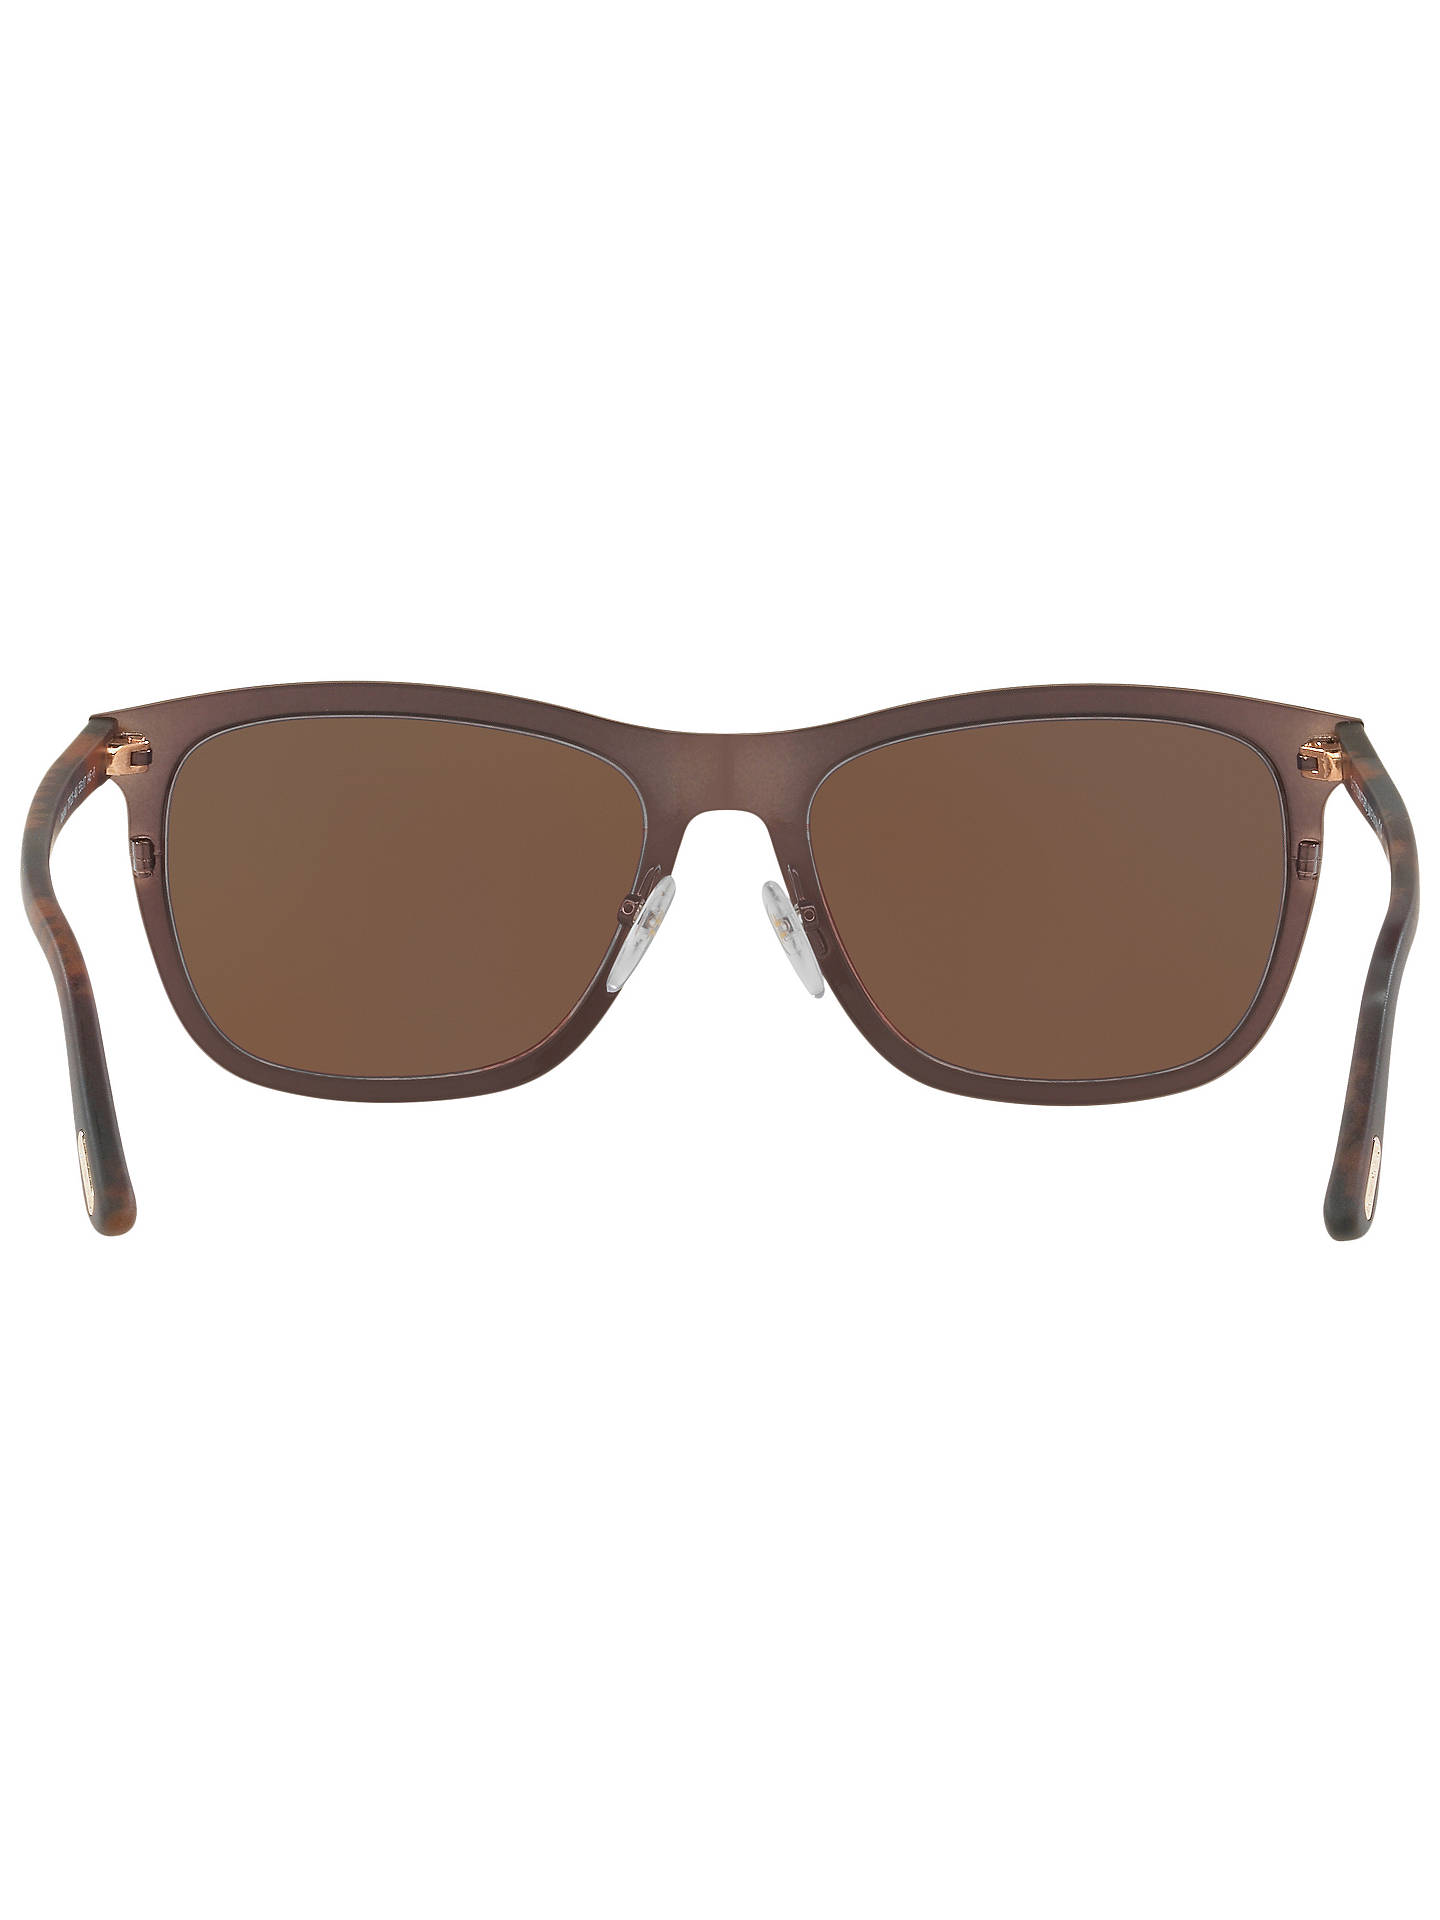 BuyTOM FORD FT0526 Alasdhair Square Sunglasses, Brown Online at johnlewis.com